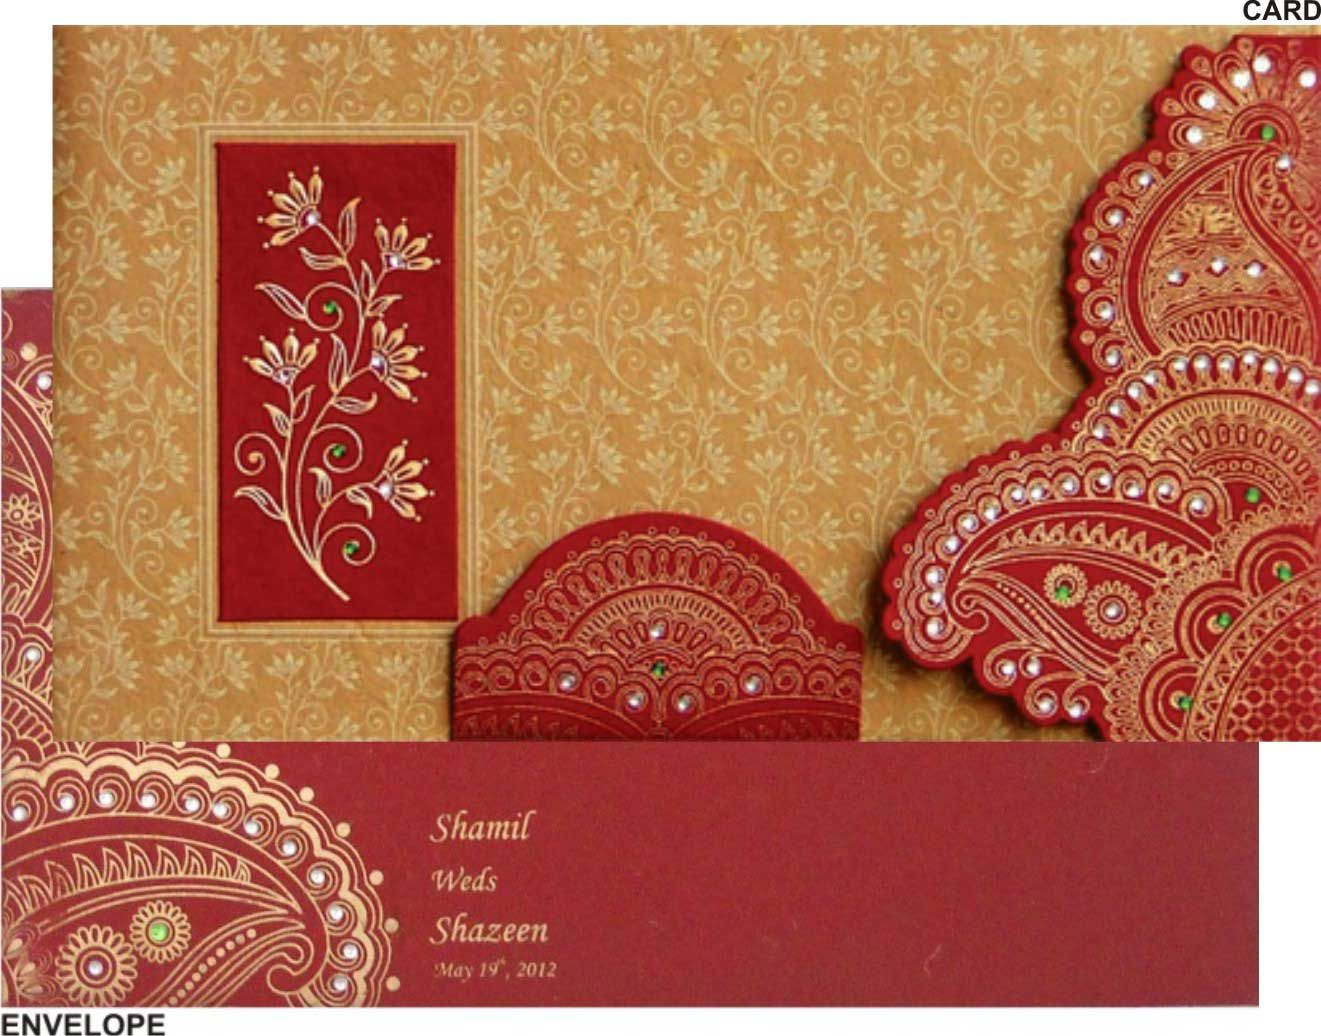 Premiumhinduweddinginvitationcardsprabhatweddingcards – Latest Indian Wedding Invitation Cards